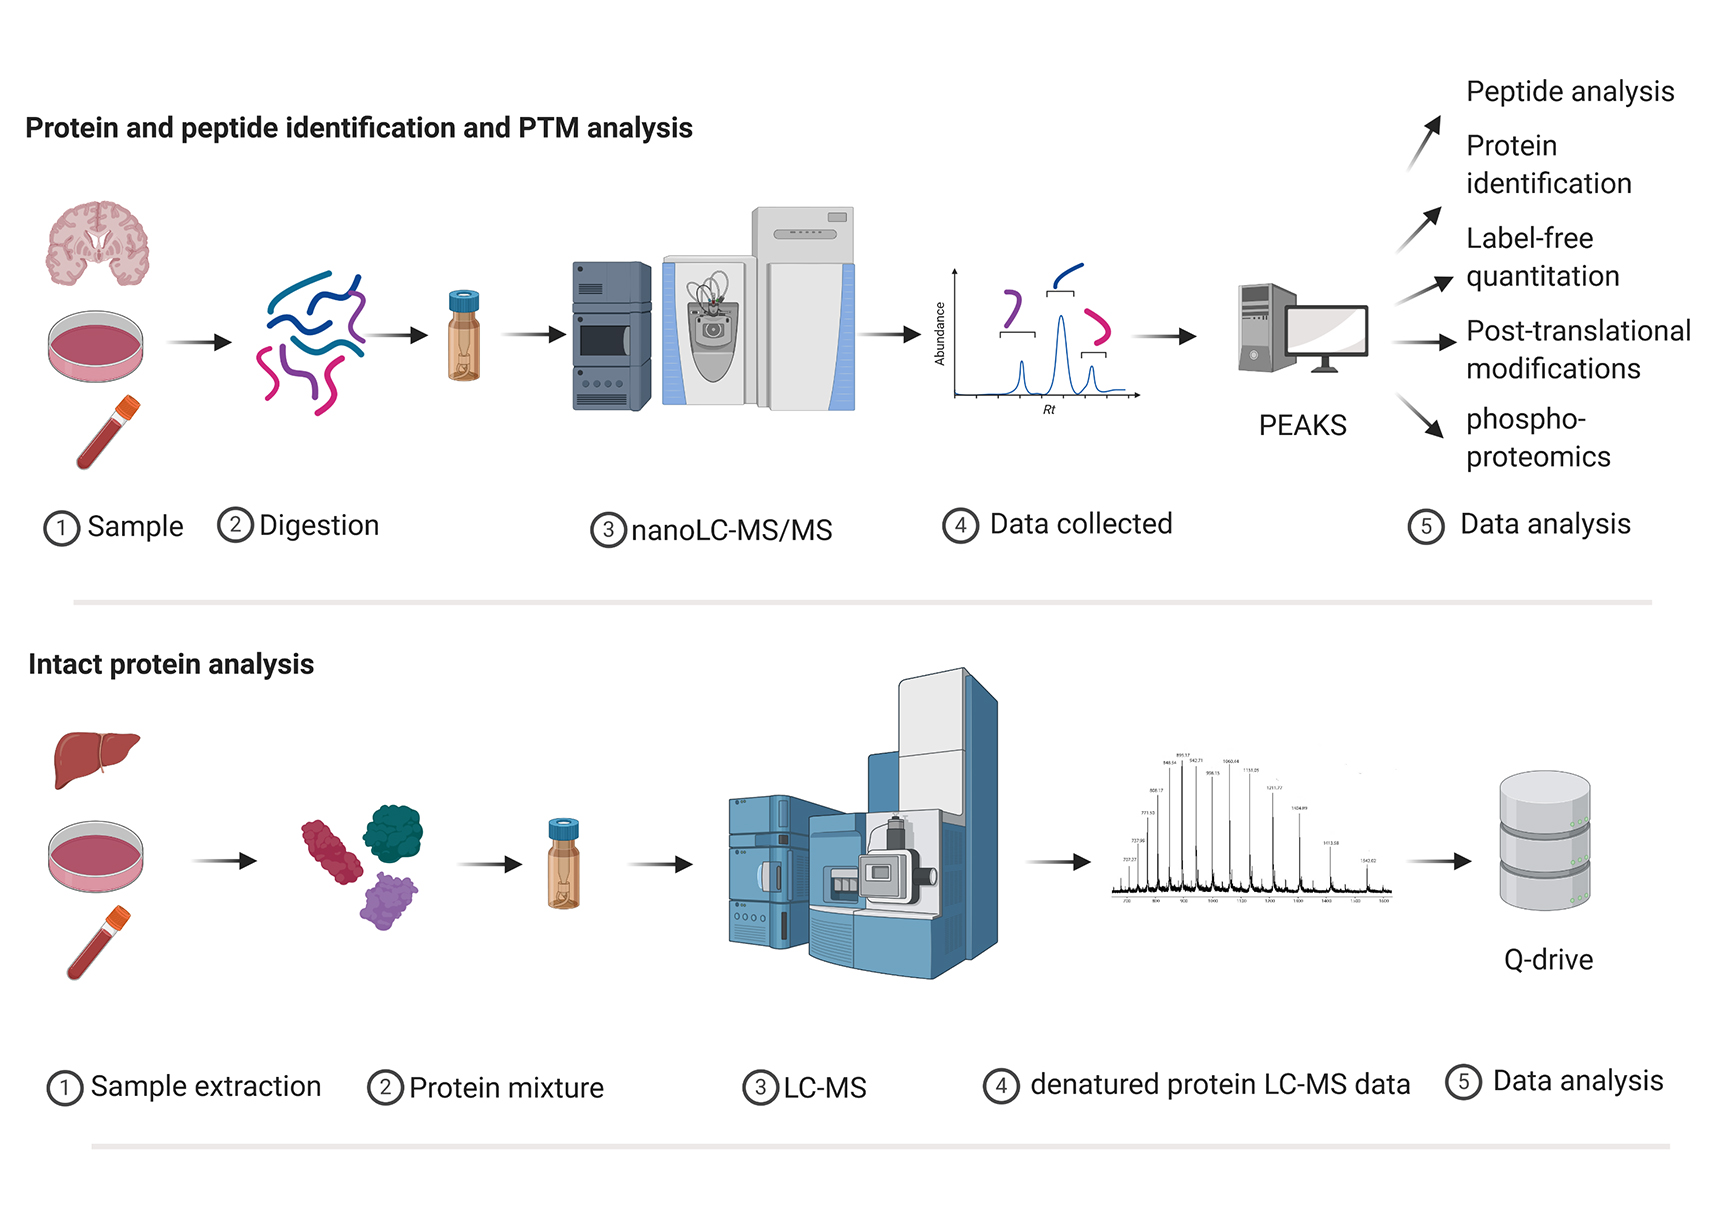 Schematic of the steps for protein or peptide mass spectrometry